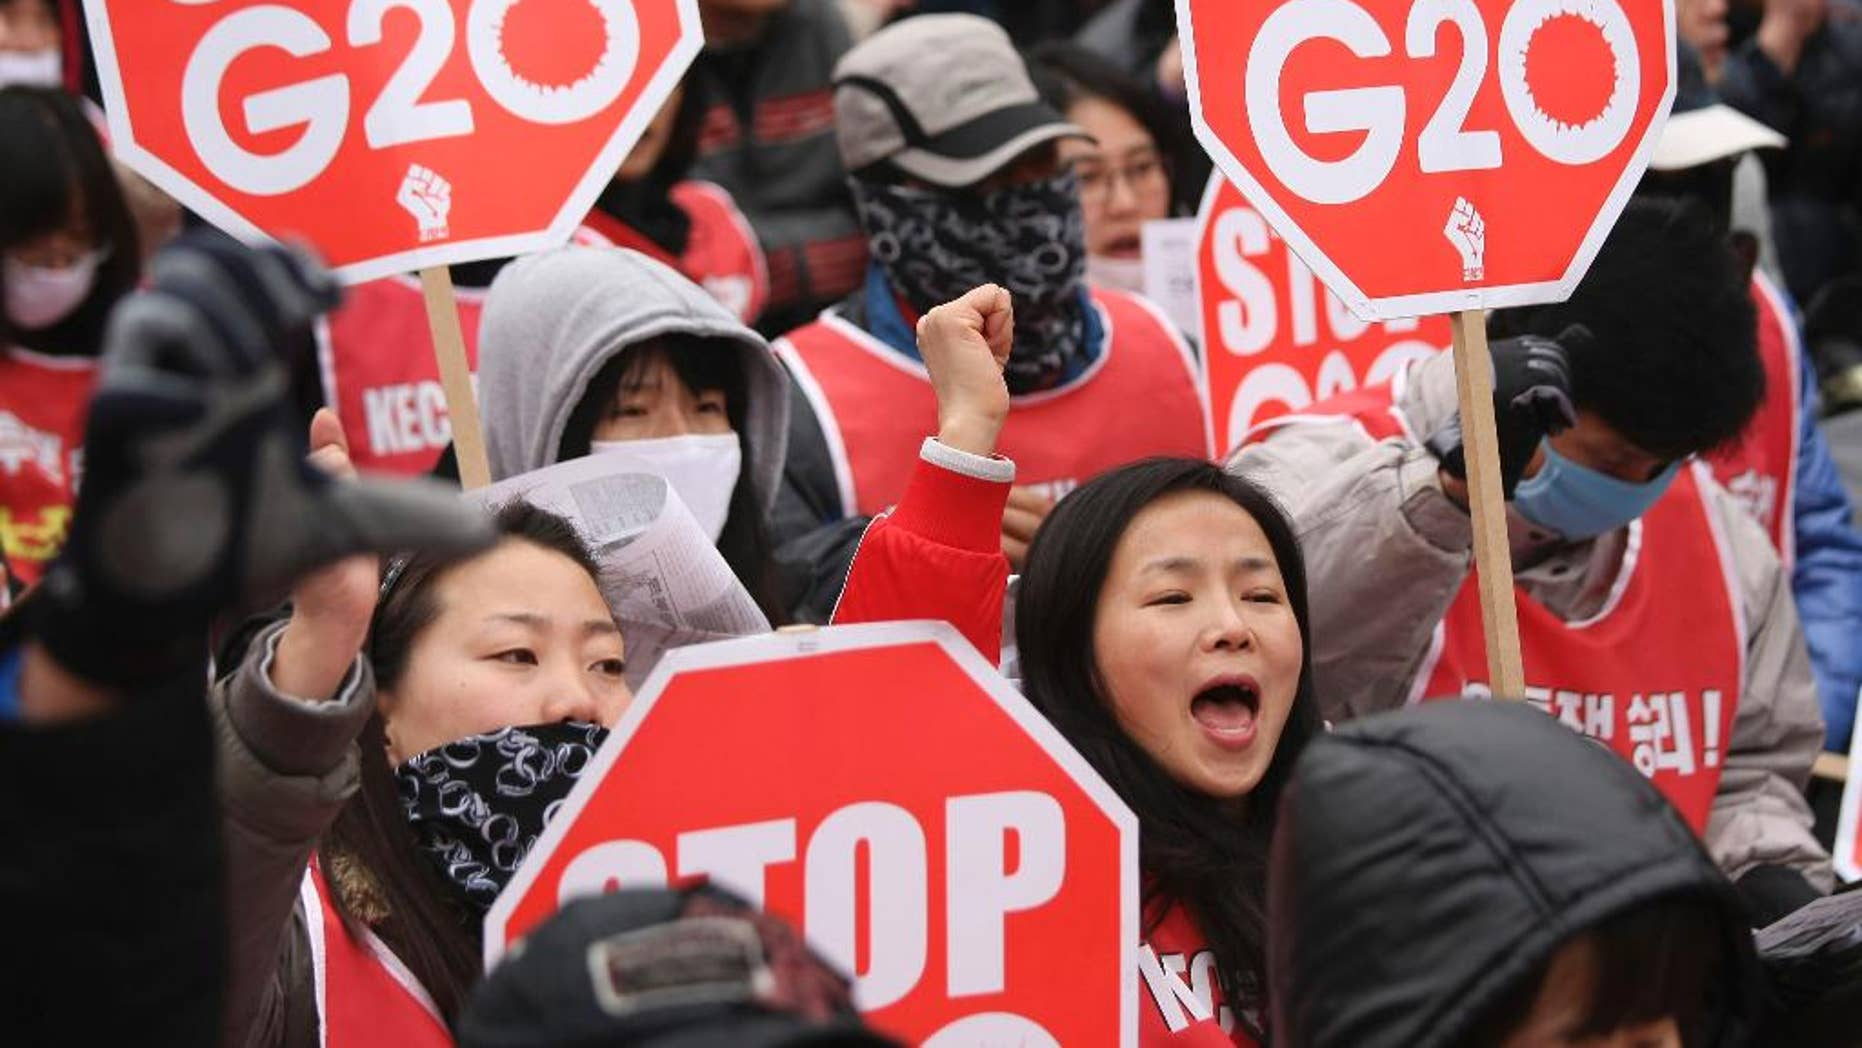 FILE - In this Thursday, Nov. 11, 2010 file photo, protesters gather to denounce the G-20 Summit. Since 2010, the G-20 has issued two-year action plans on anti-corruption efforts, and a report on what has been achieved under the last plan is expected at this weekend's summit. The leaders will also issue a new plan for 2015-16, which is expected to include commitments on issues such as foreign bribery, stolen asset recovery and whistleblower protection, said A.J. Brown, a director with Transparency International Australia. (AP Photo/Wally Santana, File)